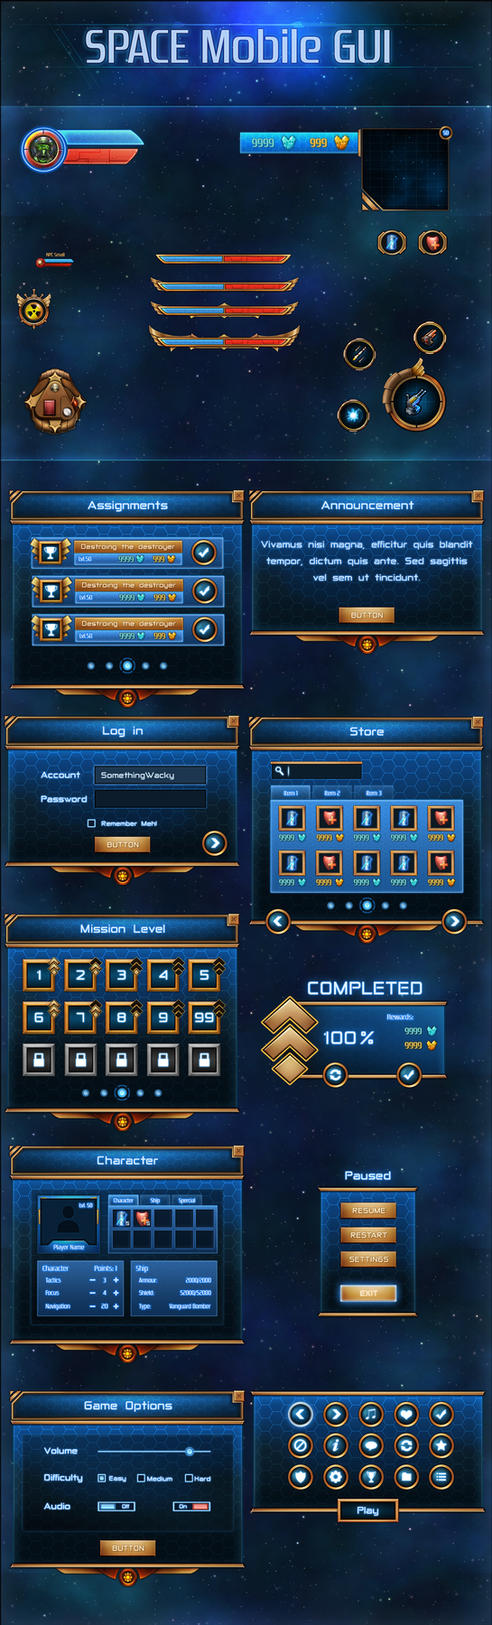 Space Mobile GUI by VengeanceMK1